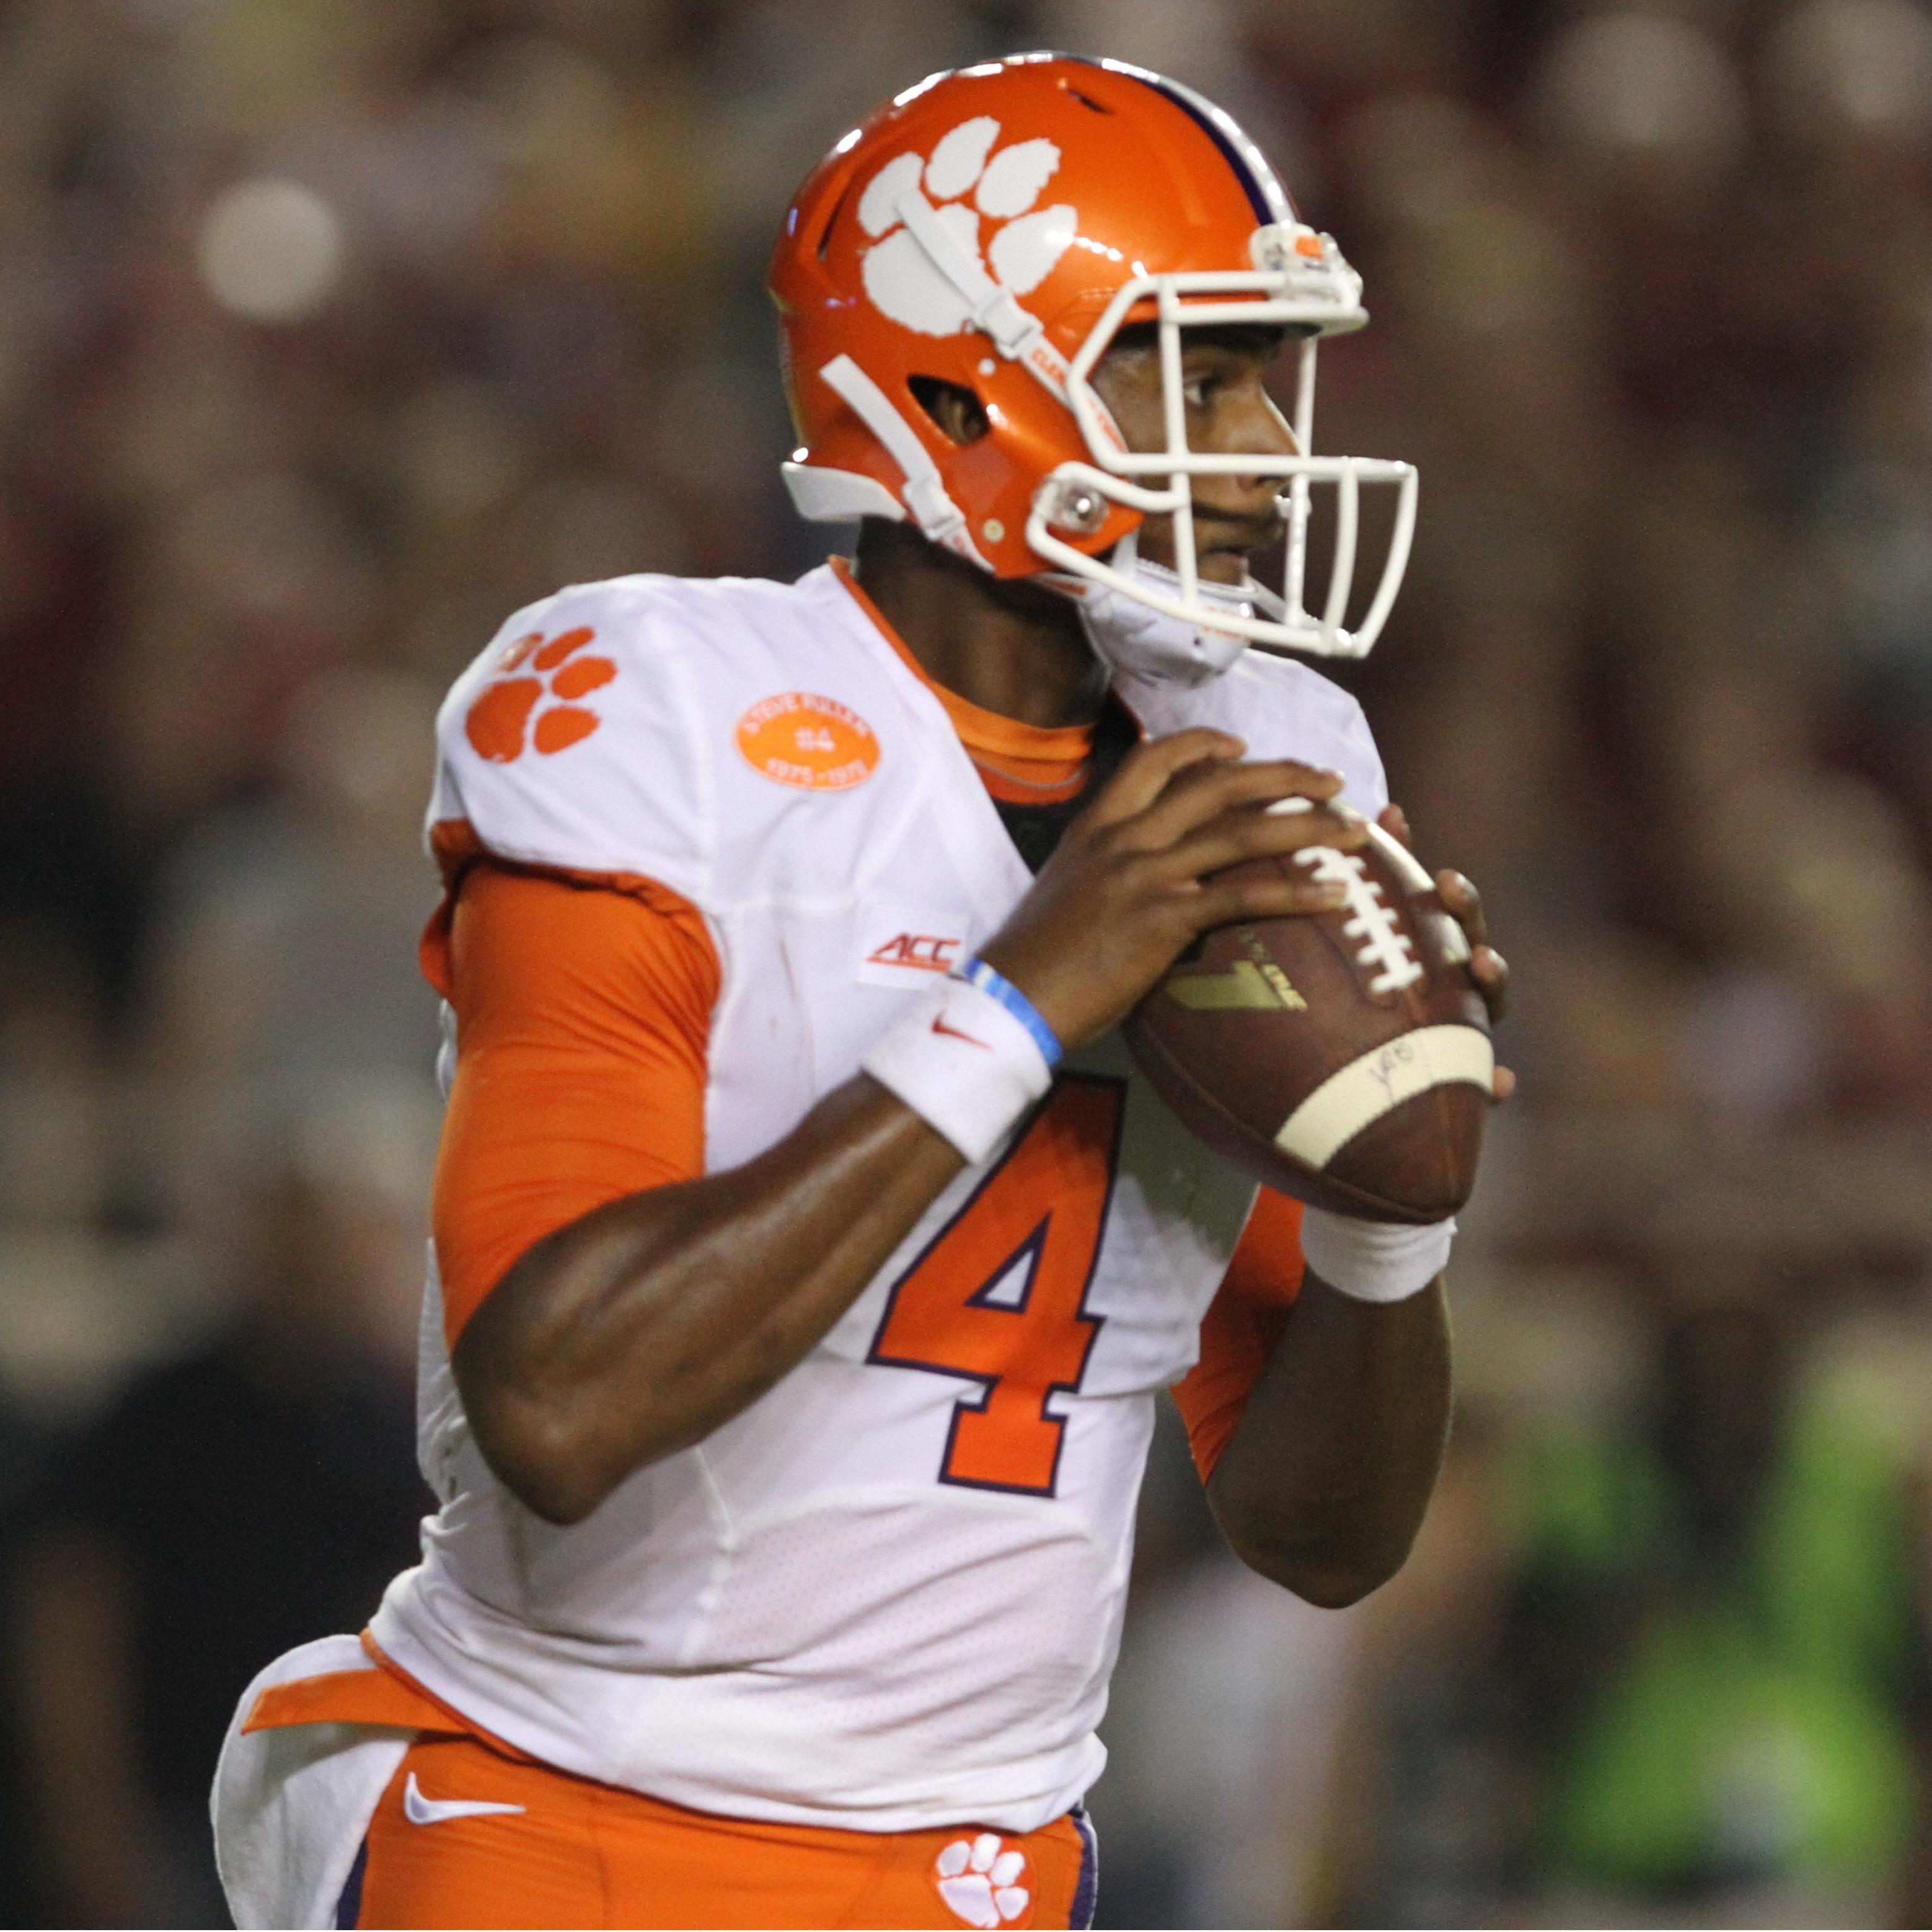 AgSouth Homegrown Athlete of the Week ? Deshaun Watson